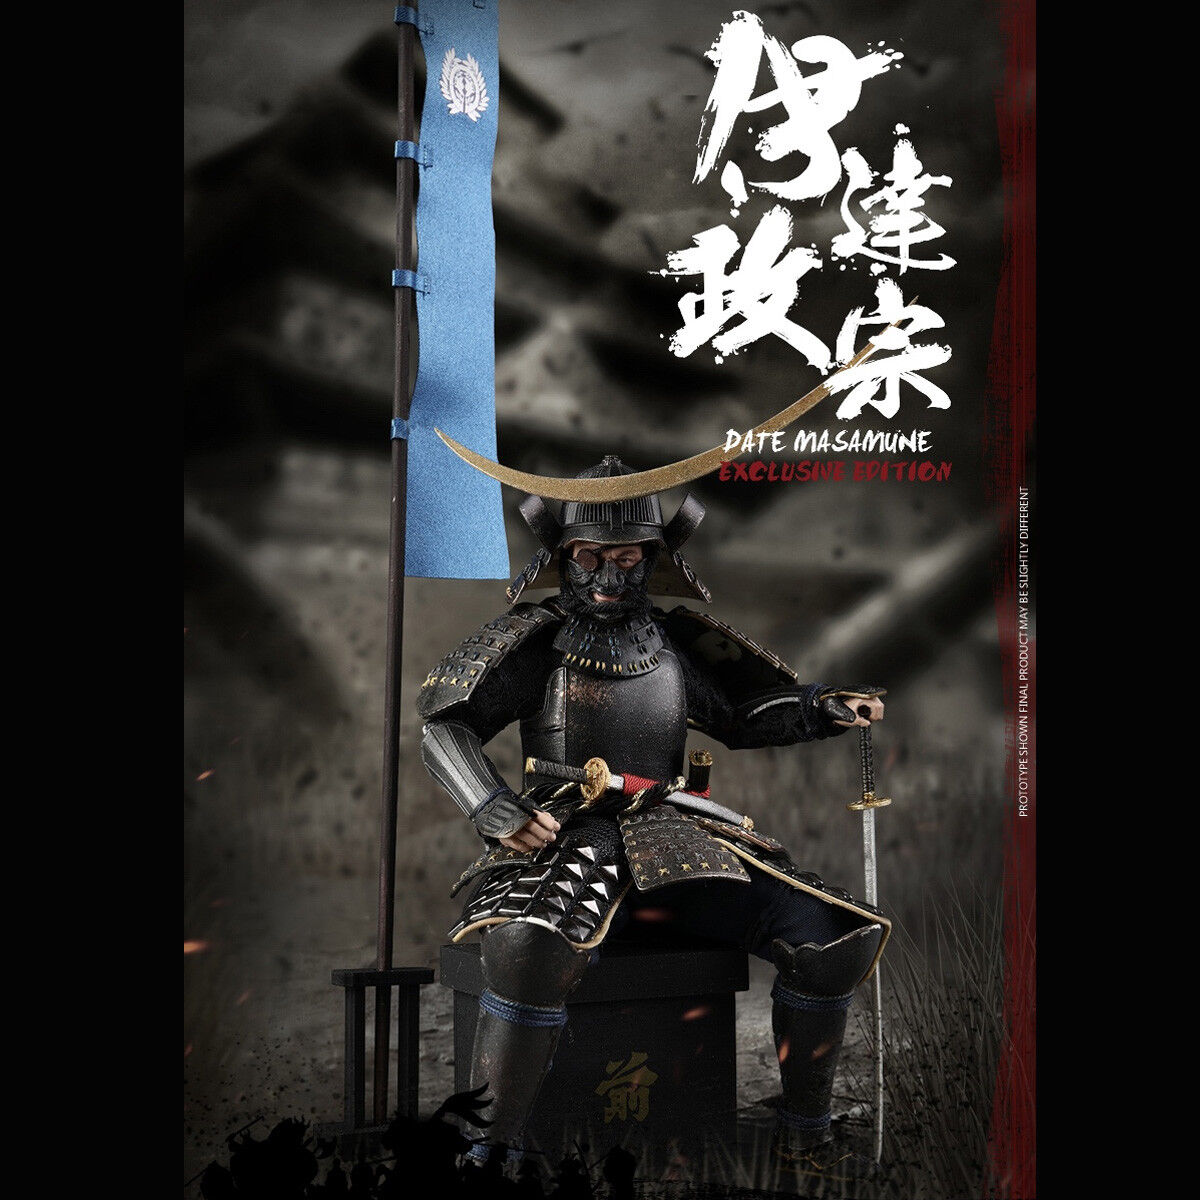 1 12 COOMODEL NO.PE007 PALM EMPIRES - DATE MASAMUNE Collectible Figure Exclusive